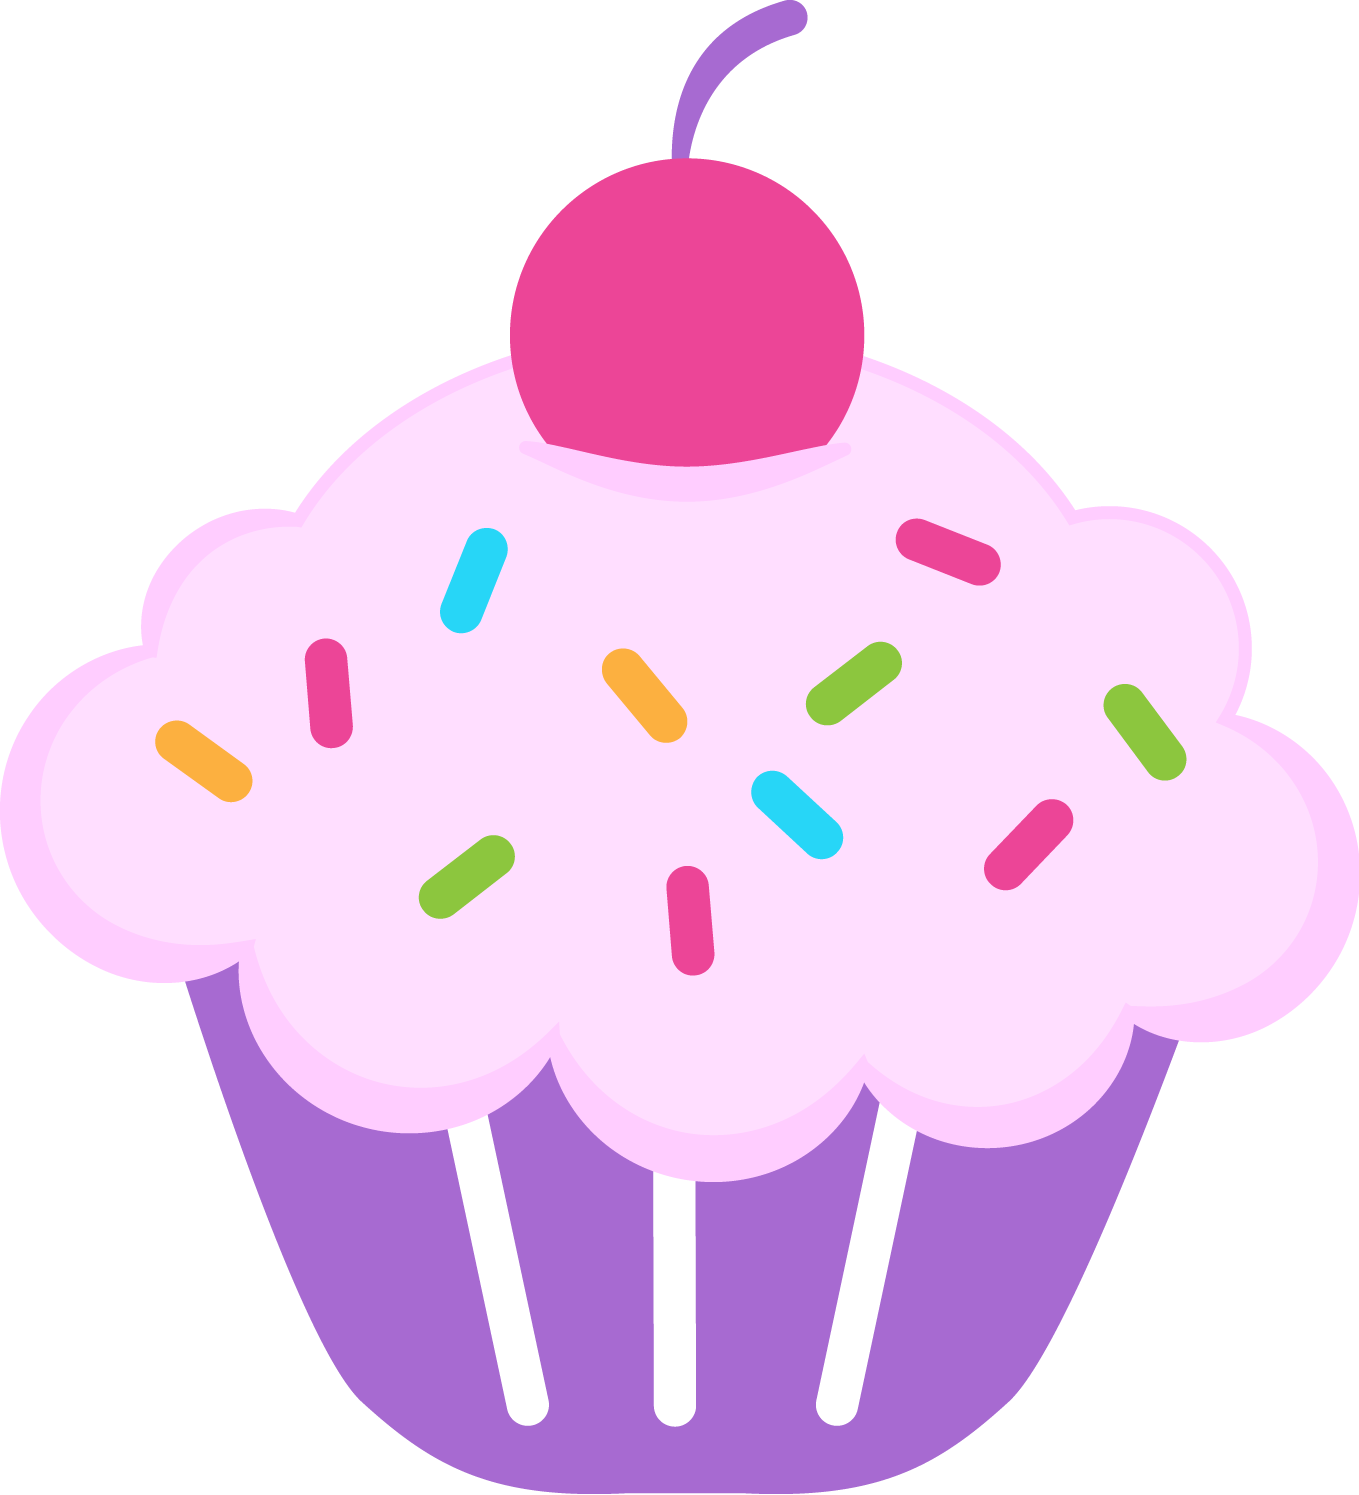 Happy Birthday Cupcake Clip Art And Nice Photo - Cute Muffin PNG